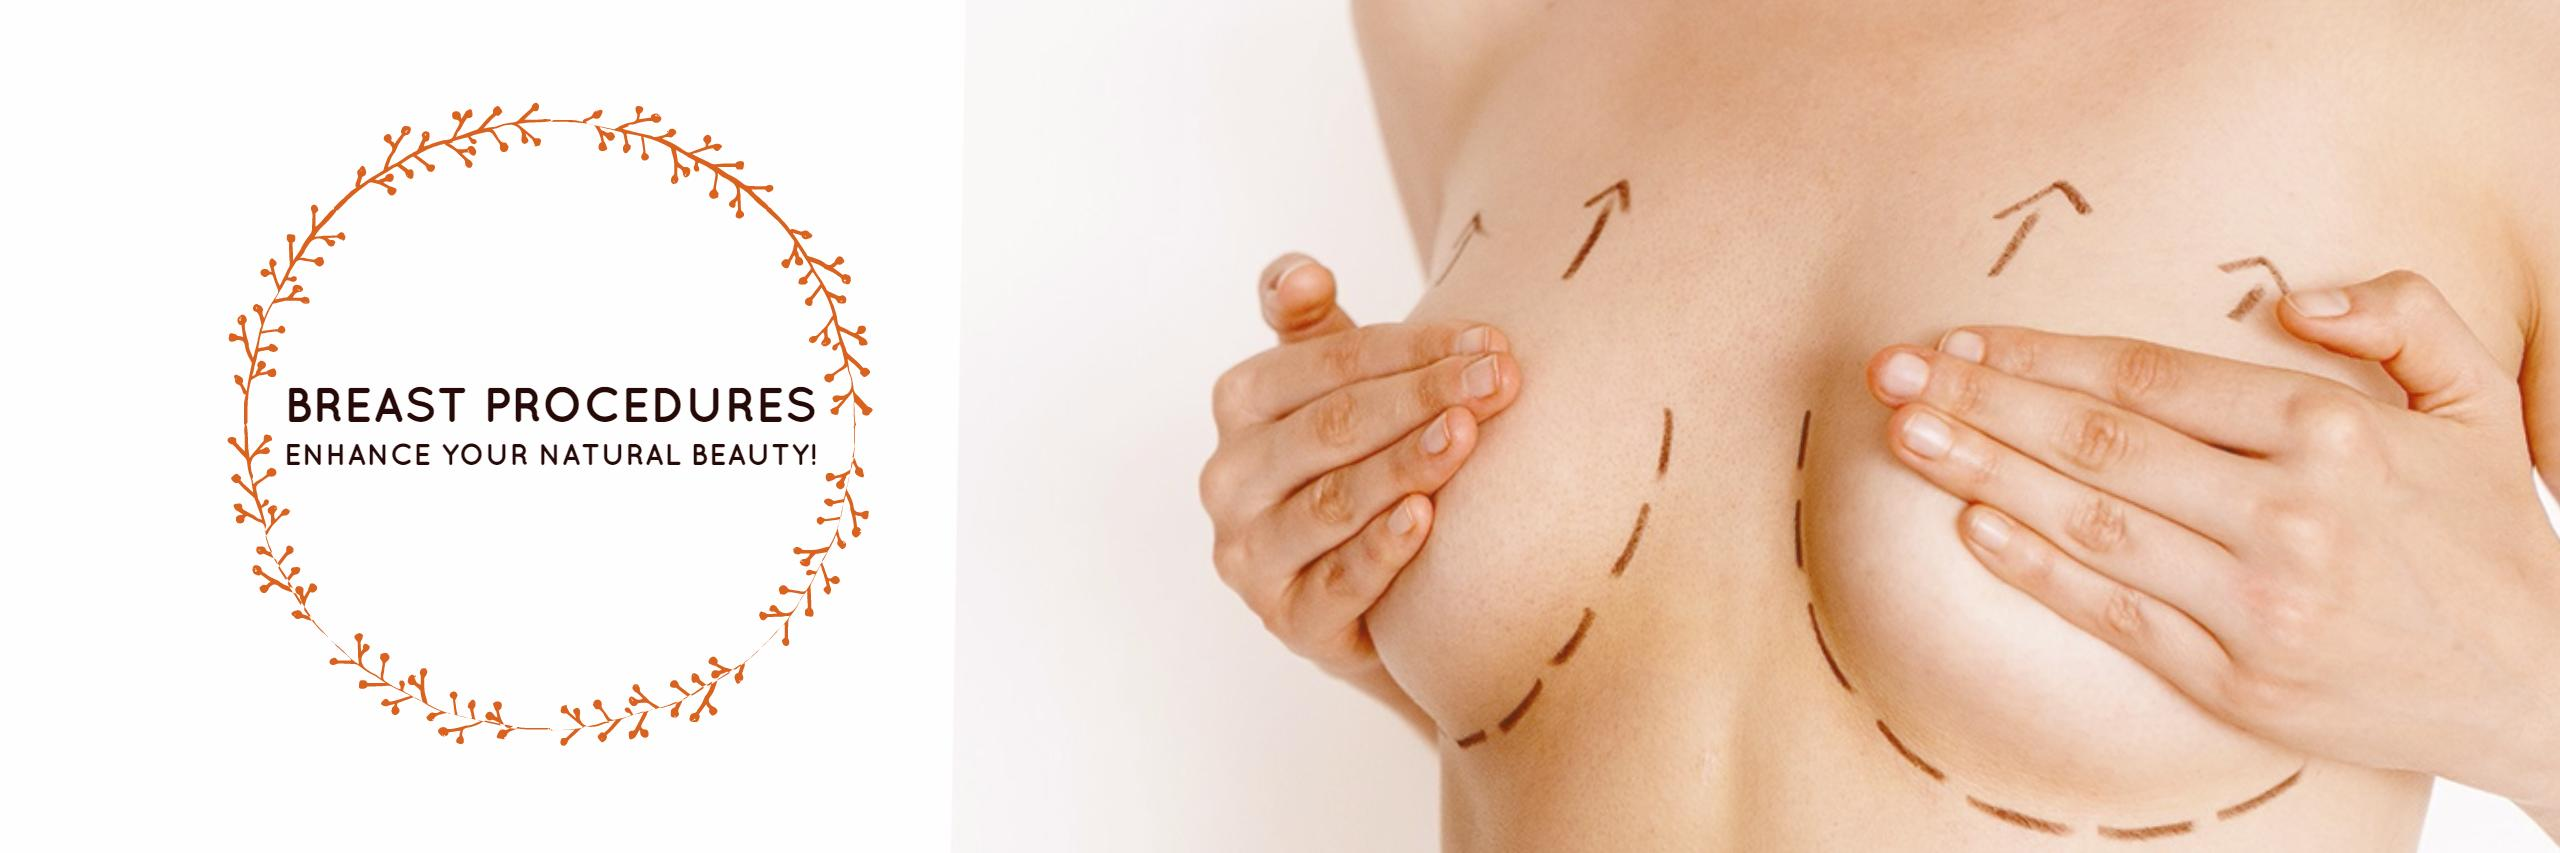 Body and Breast Procedures!